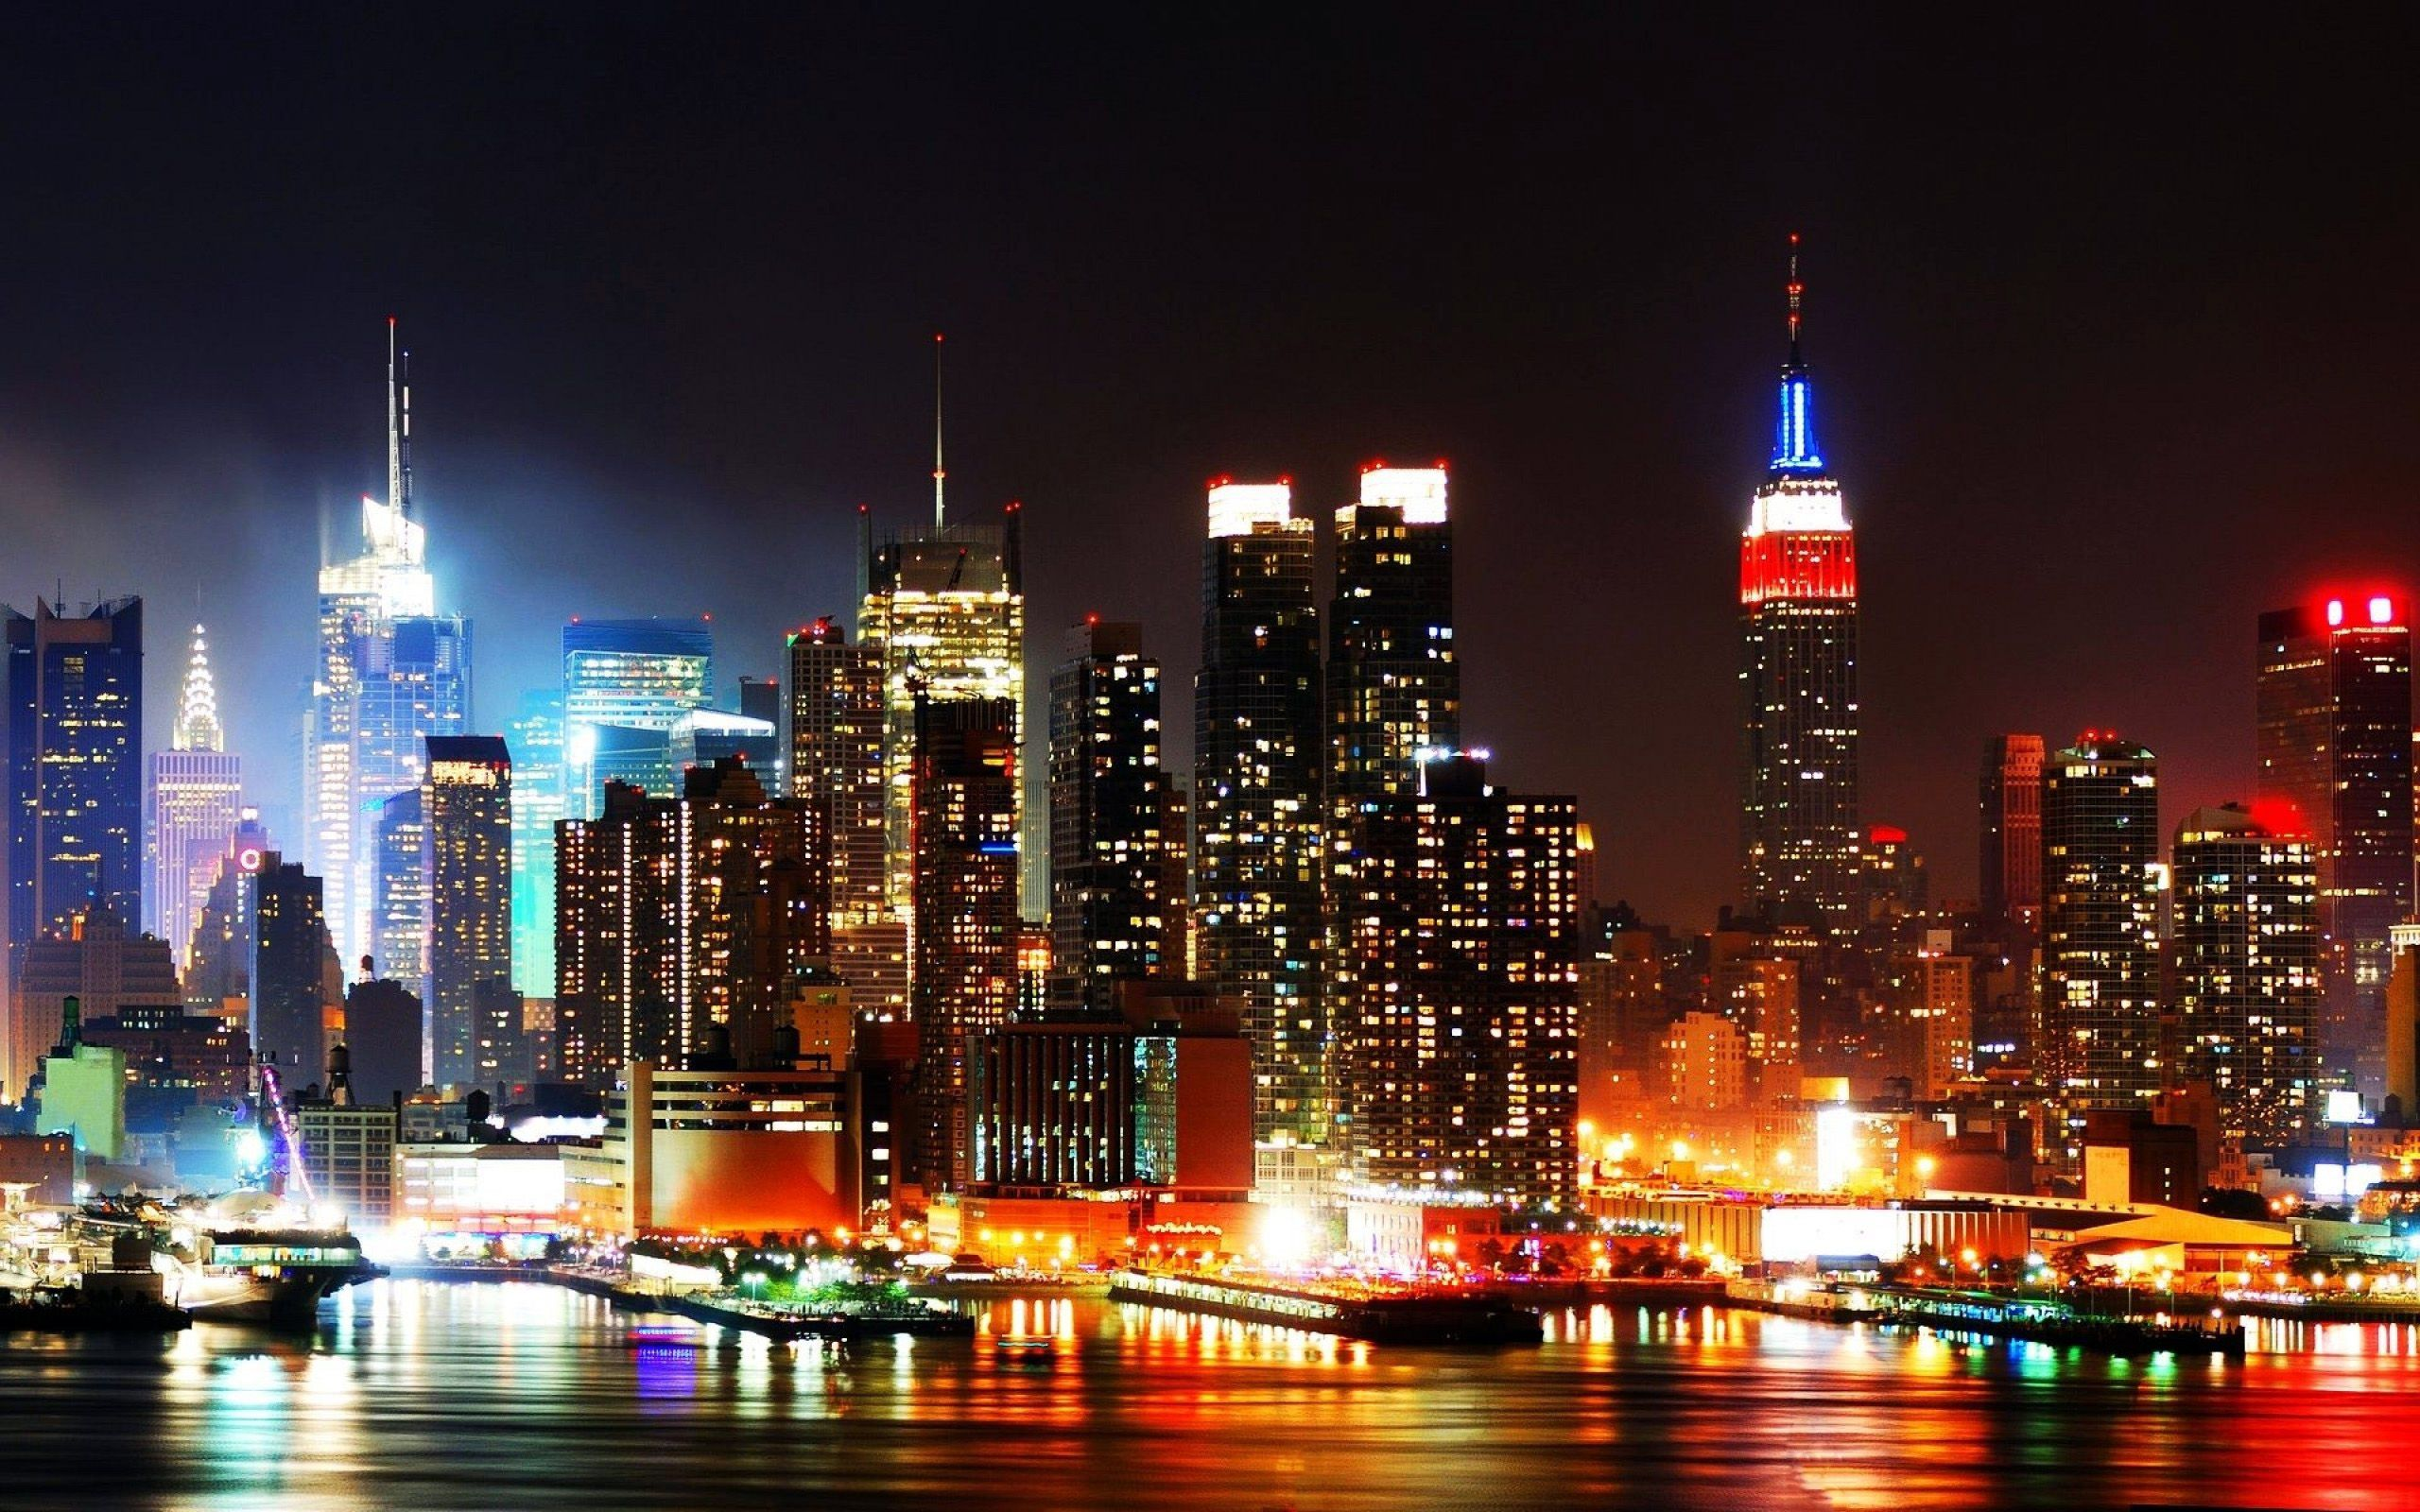 New york city skyline at night 2560 x 1600 see more on - New york skyline computer wallpaper ...